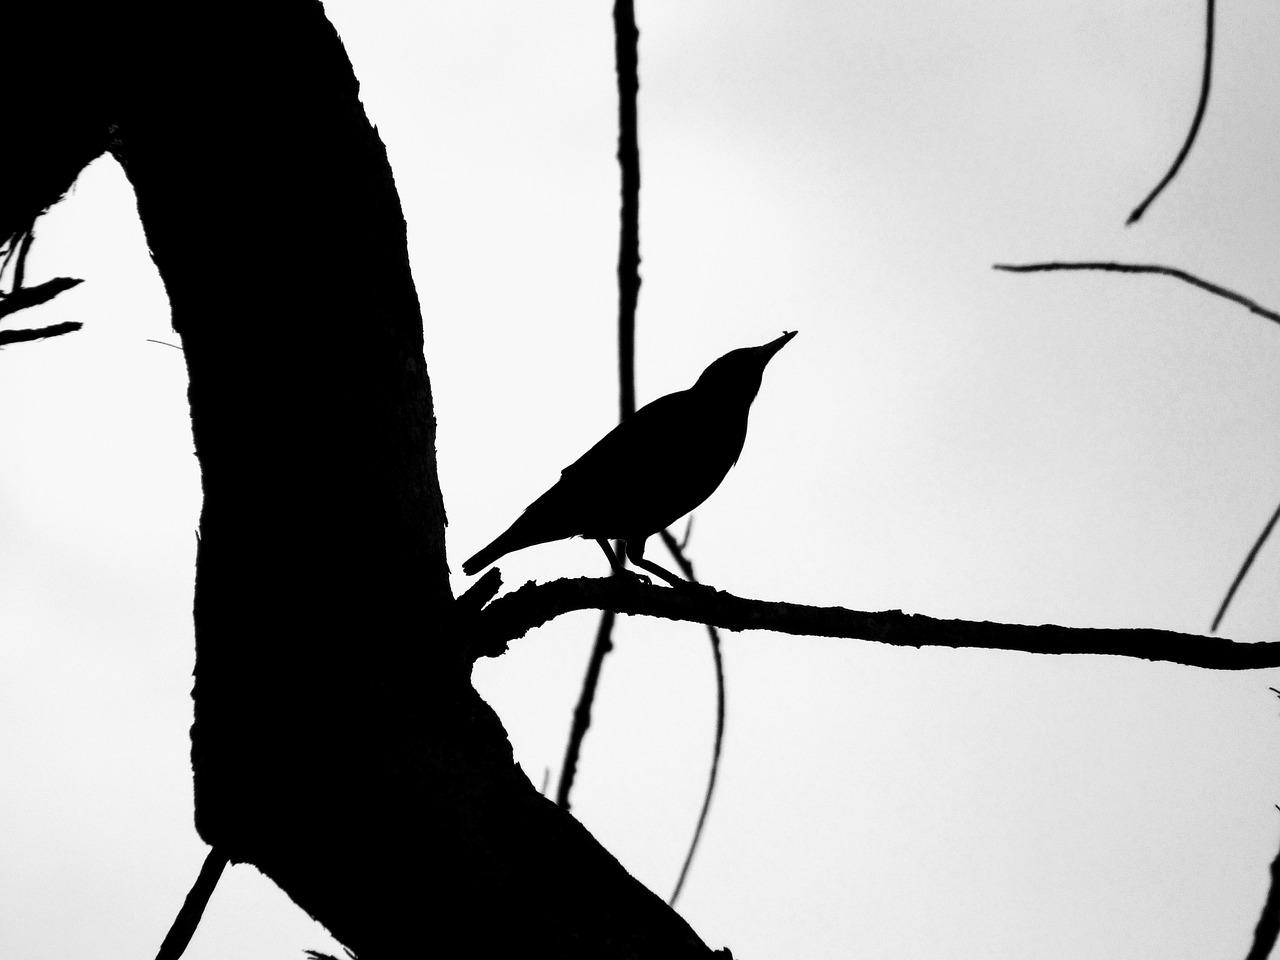 louisiana silhouette on black background